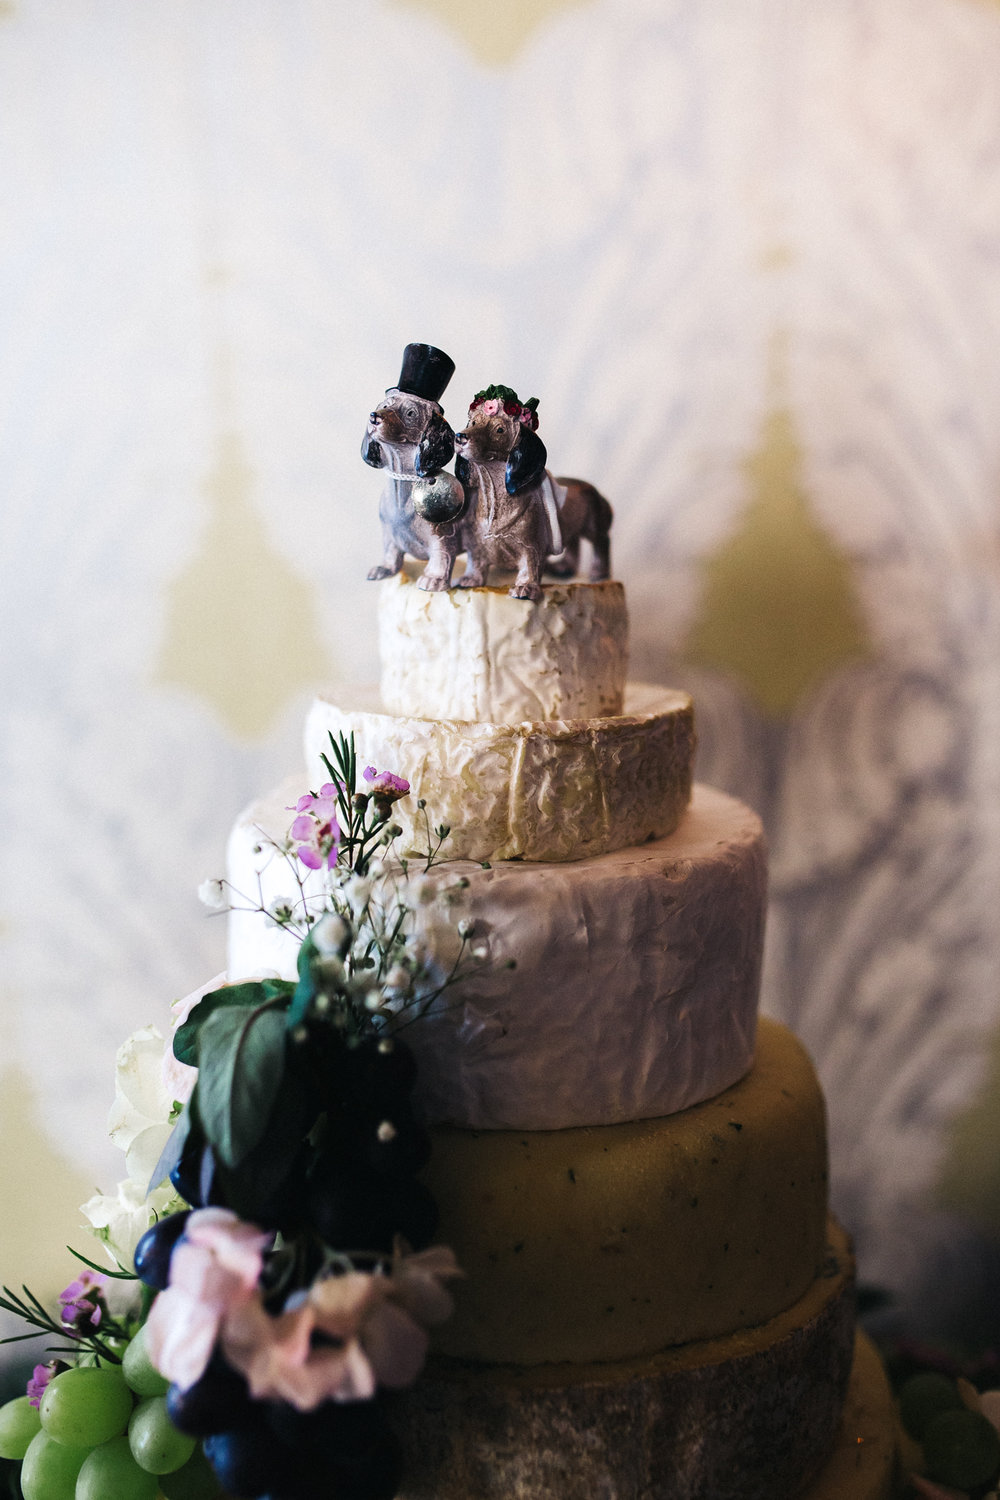 a cheese wedding cake with a daschund bride and groom on top. ceremony at st georges hall liverpool, oh me oh my wedding reception, north west wedding photographer